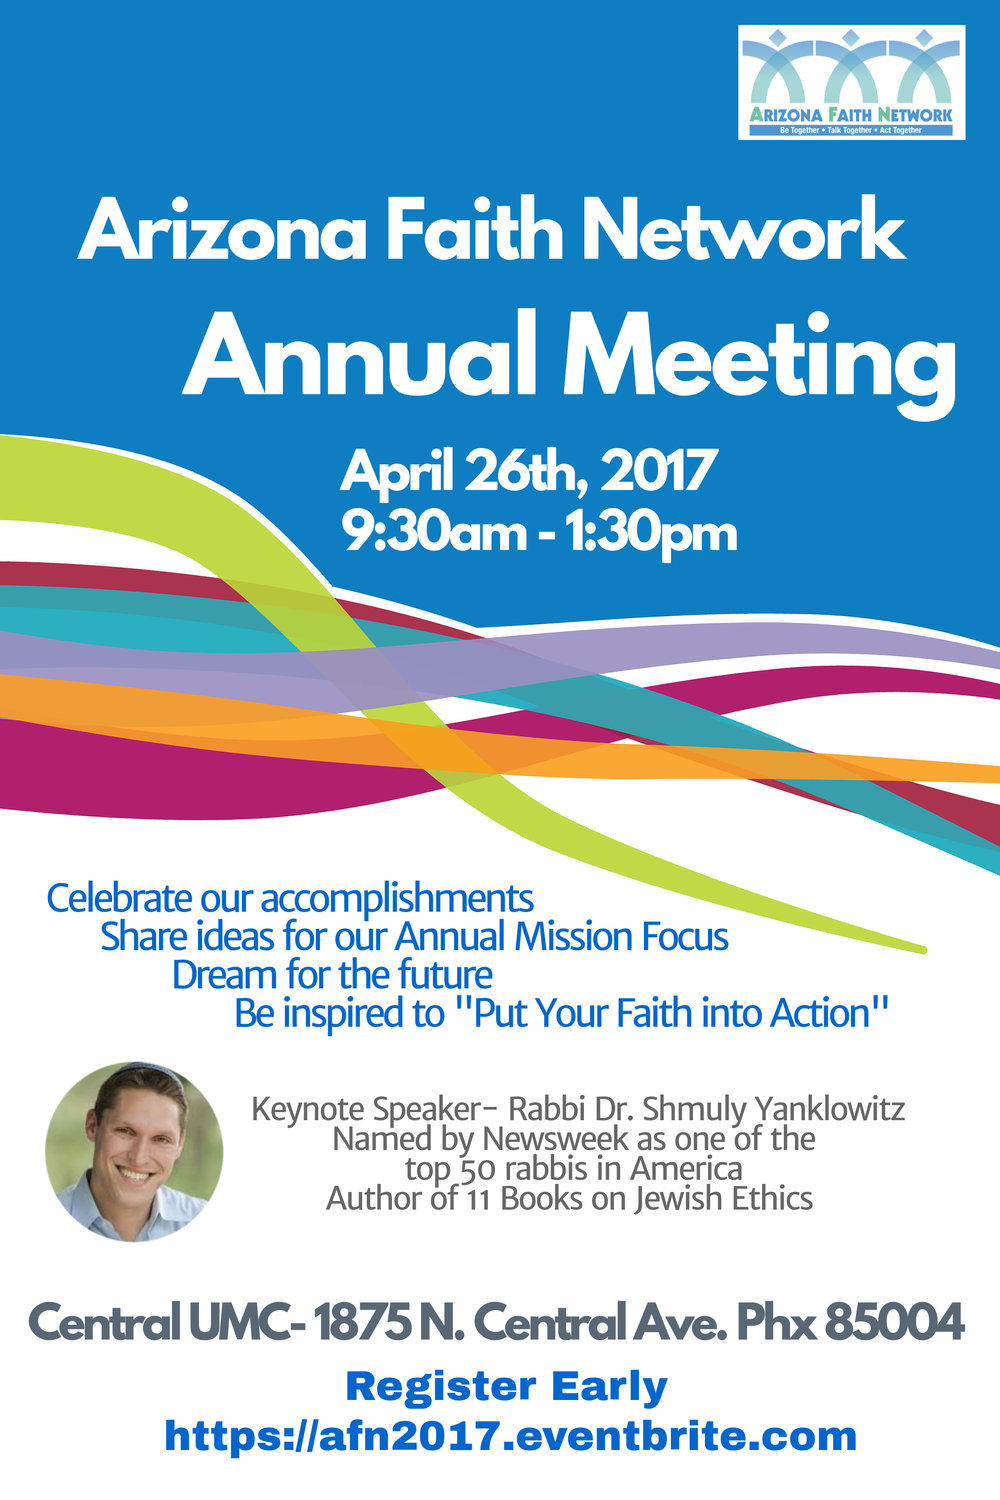 2017 Annual Meeting Invitation.jpg